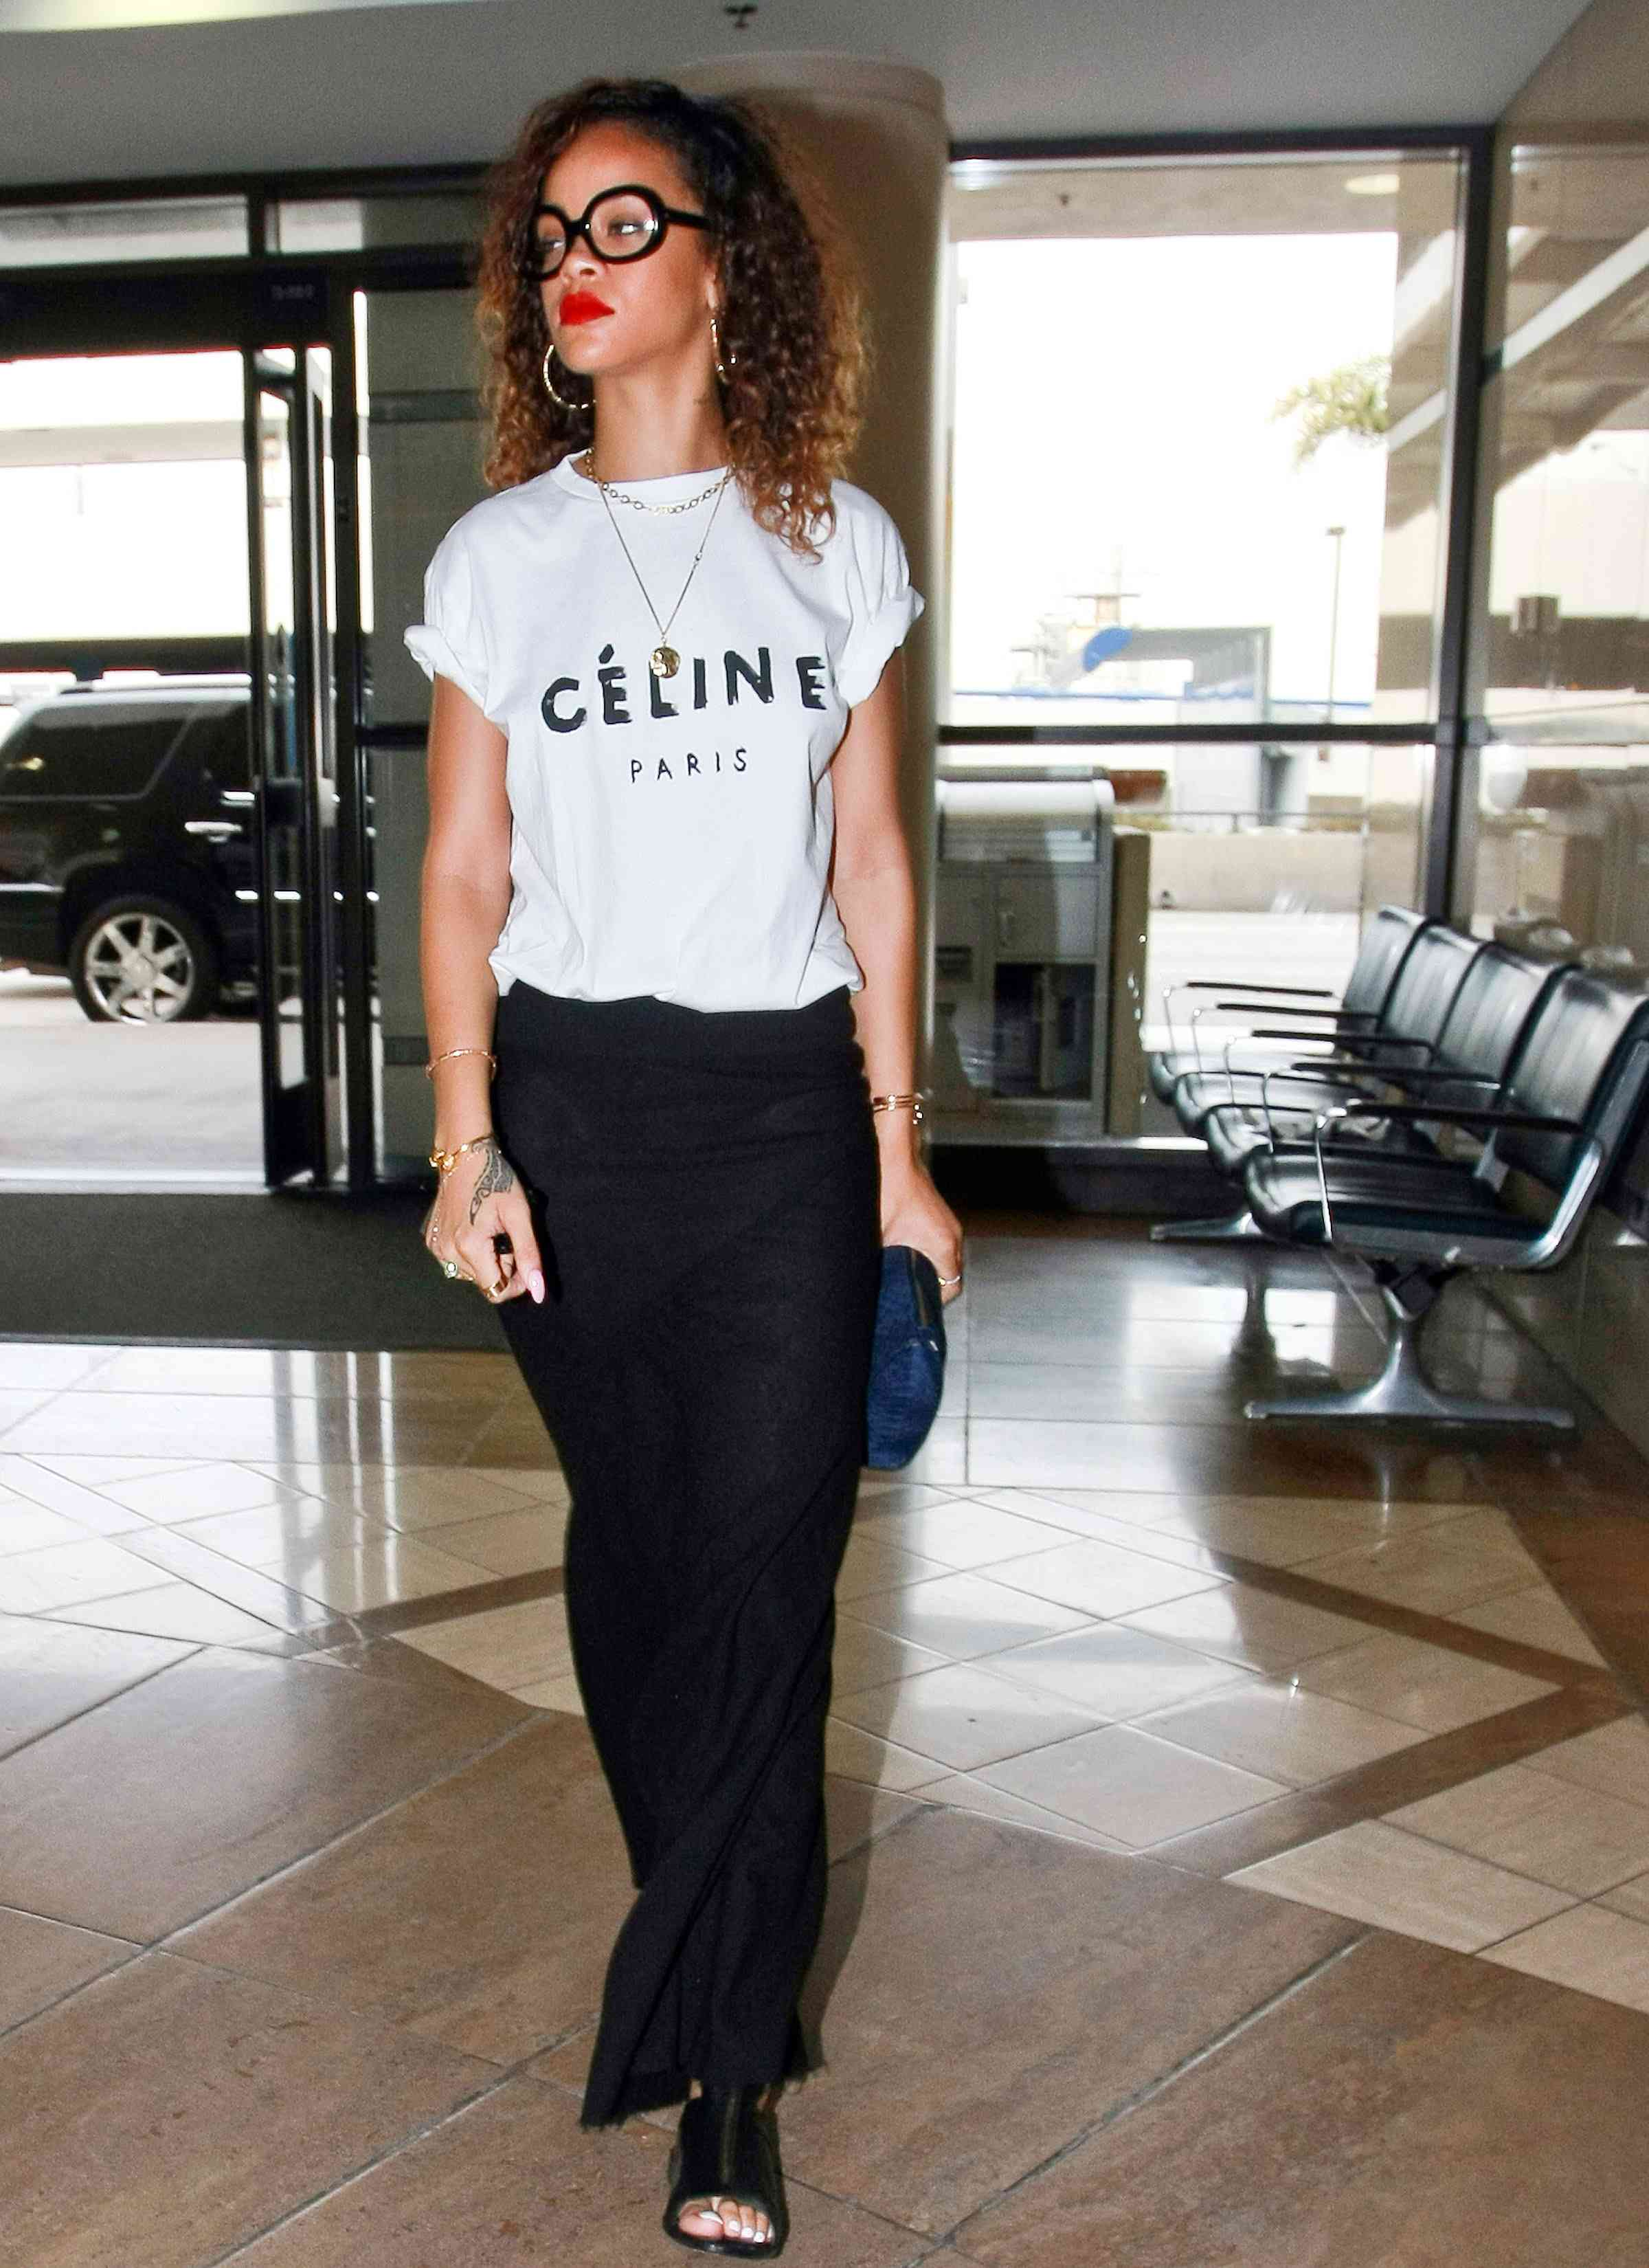 8577106 Rihanna shows off her special style in Los Angeles, CA on January 14, 2012 as she makes her way to the airport.  FameFlynet, Inc. - Santa Monica, CA, USA - +1 (310) 395-0500